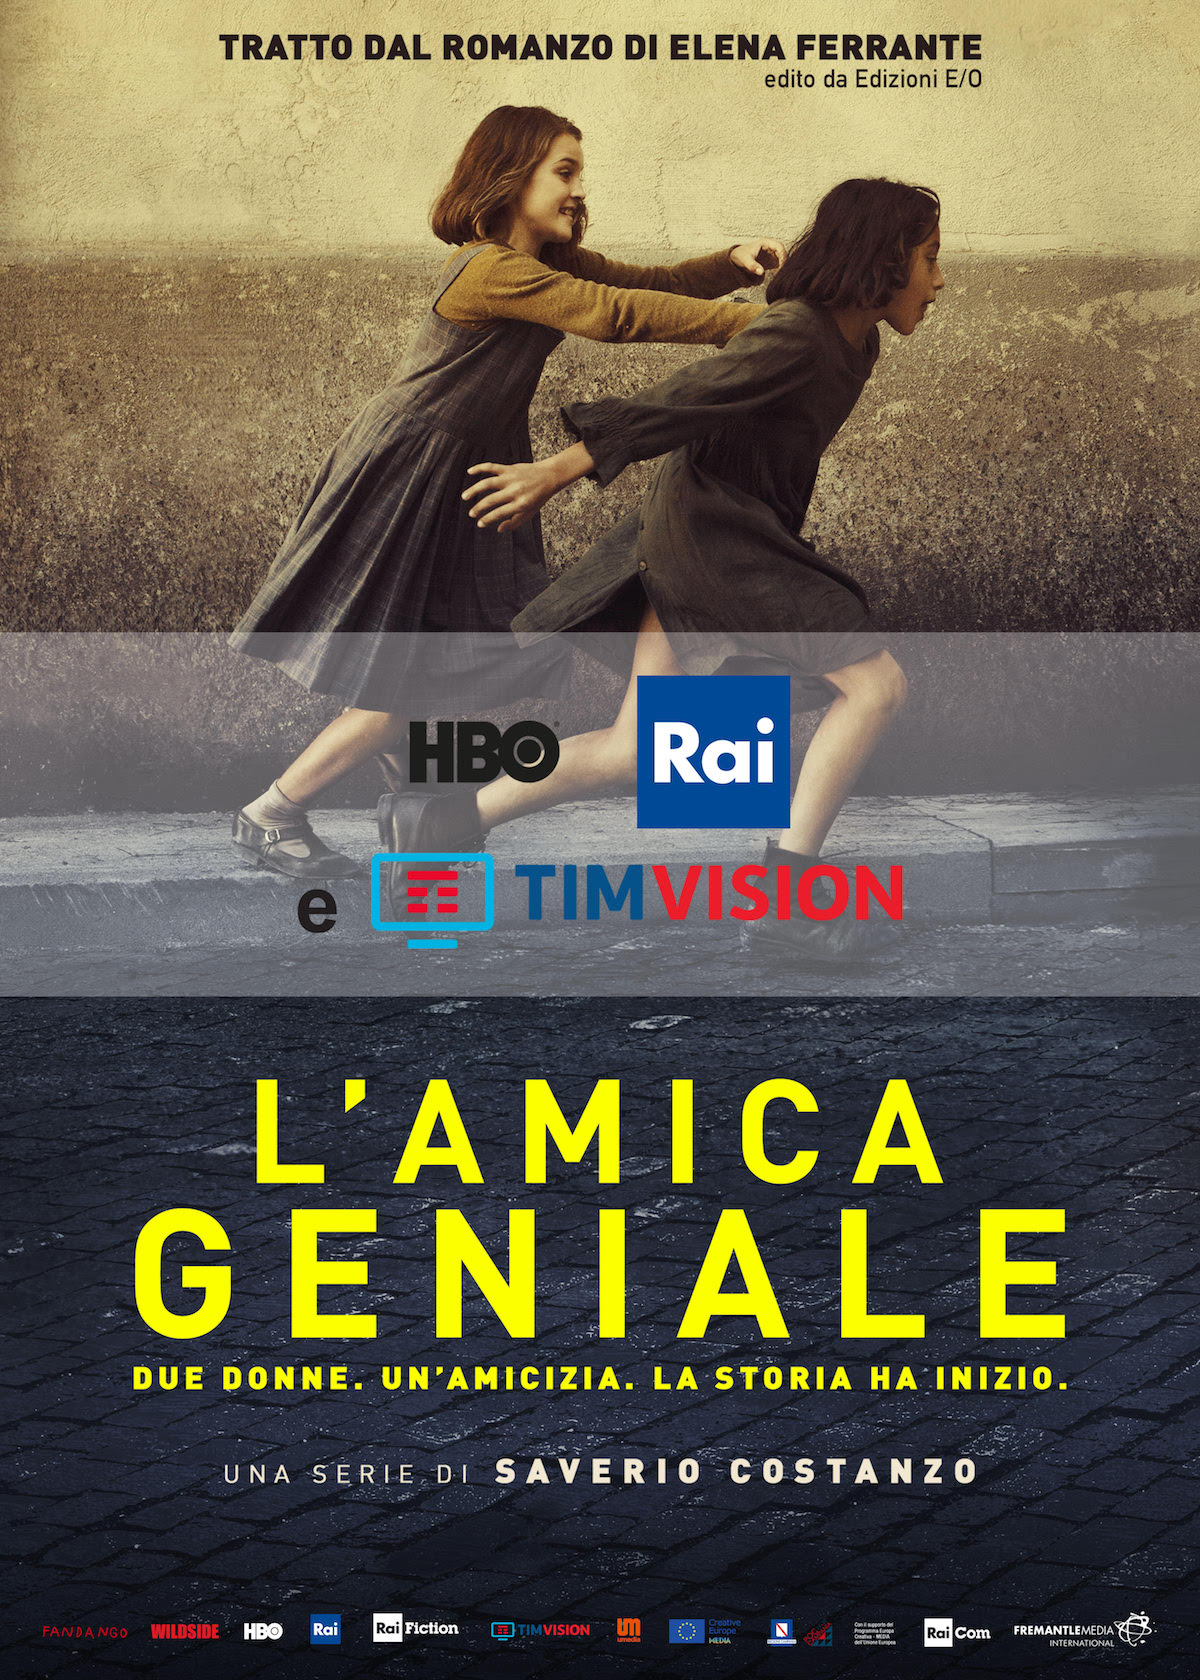 L'amica geniale - Saverio Costanzo